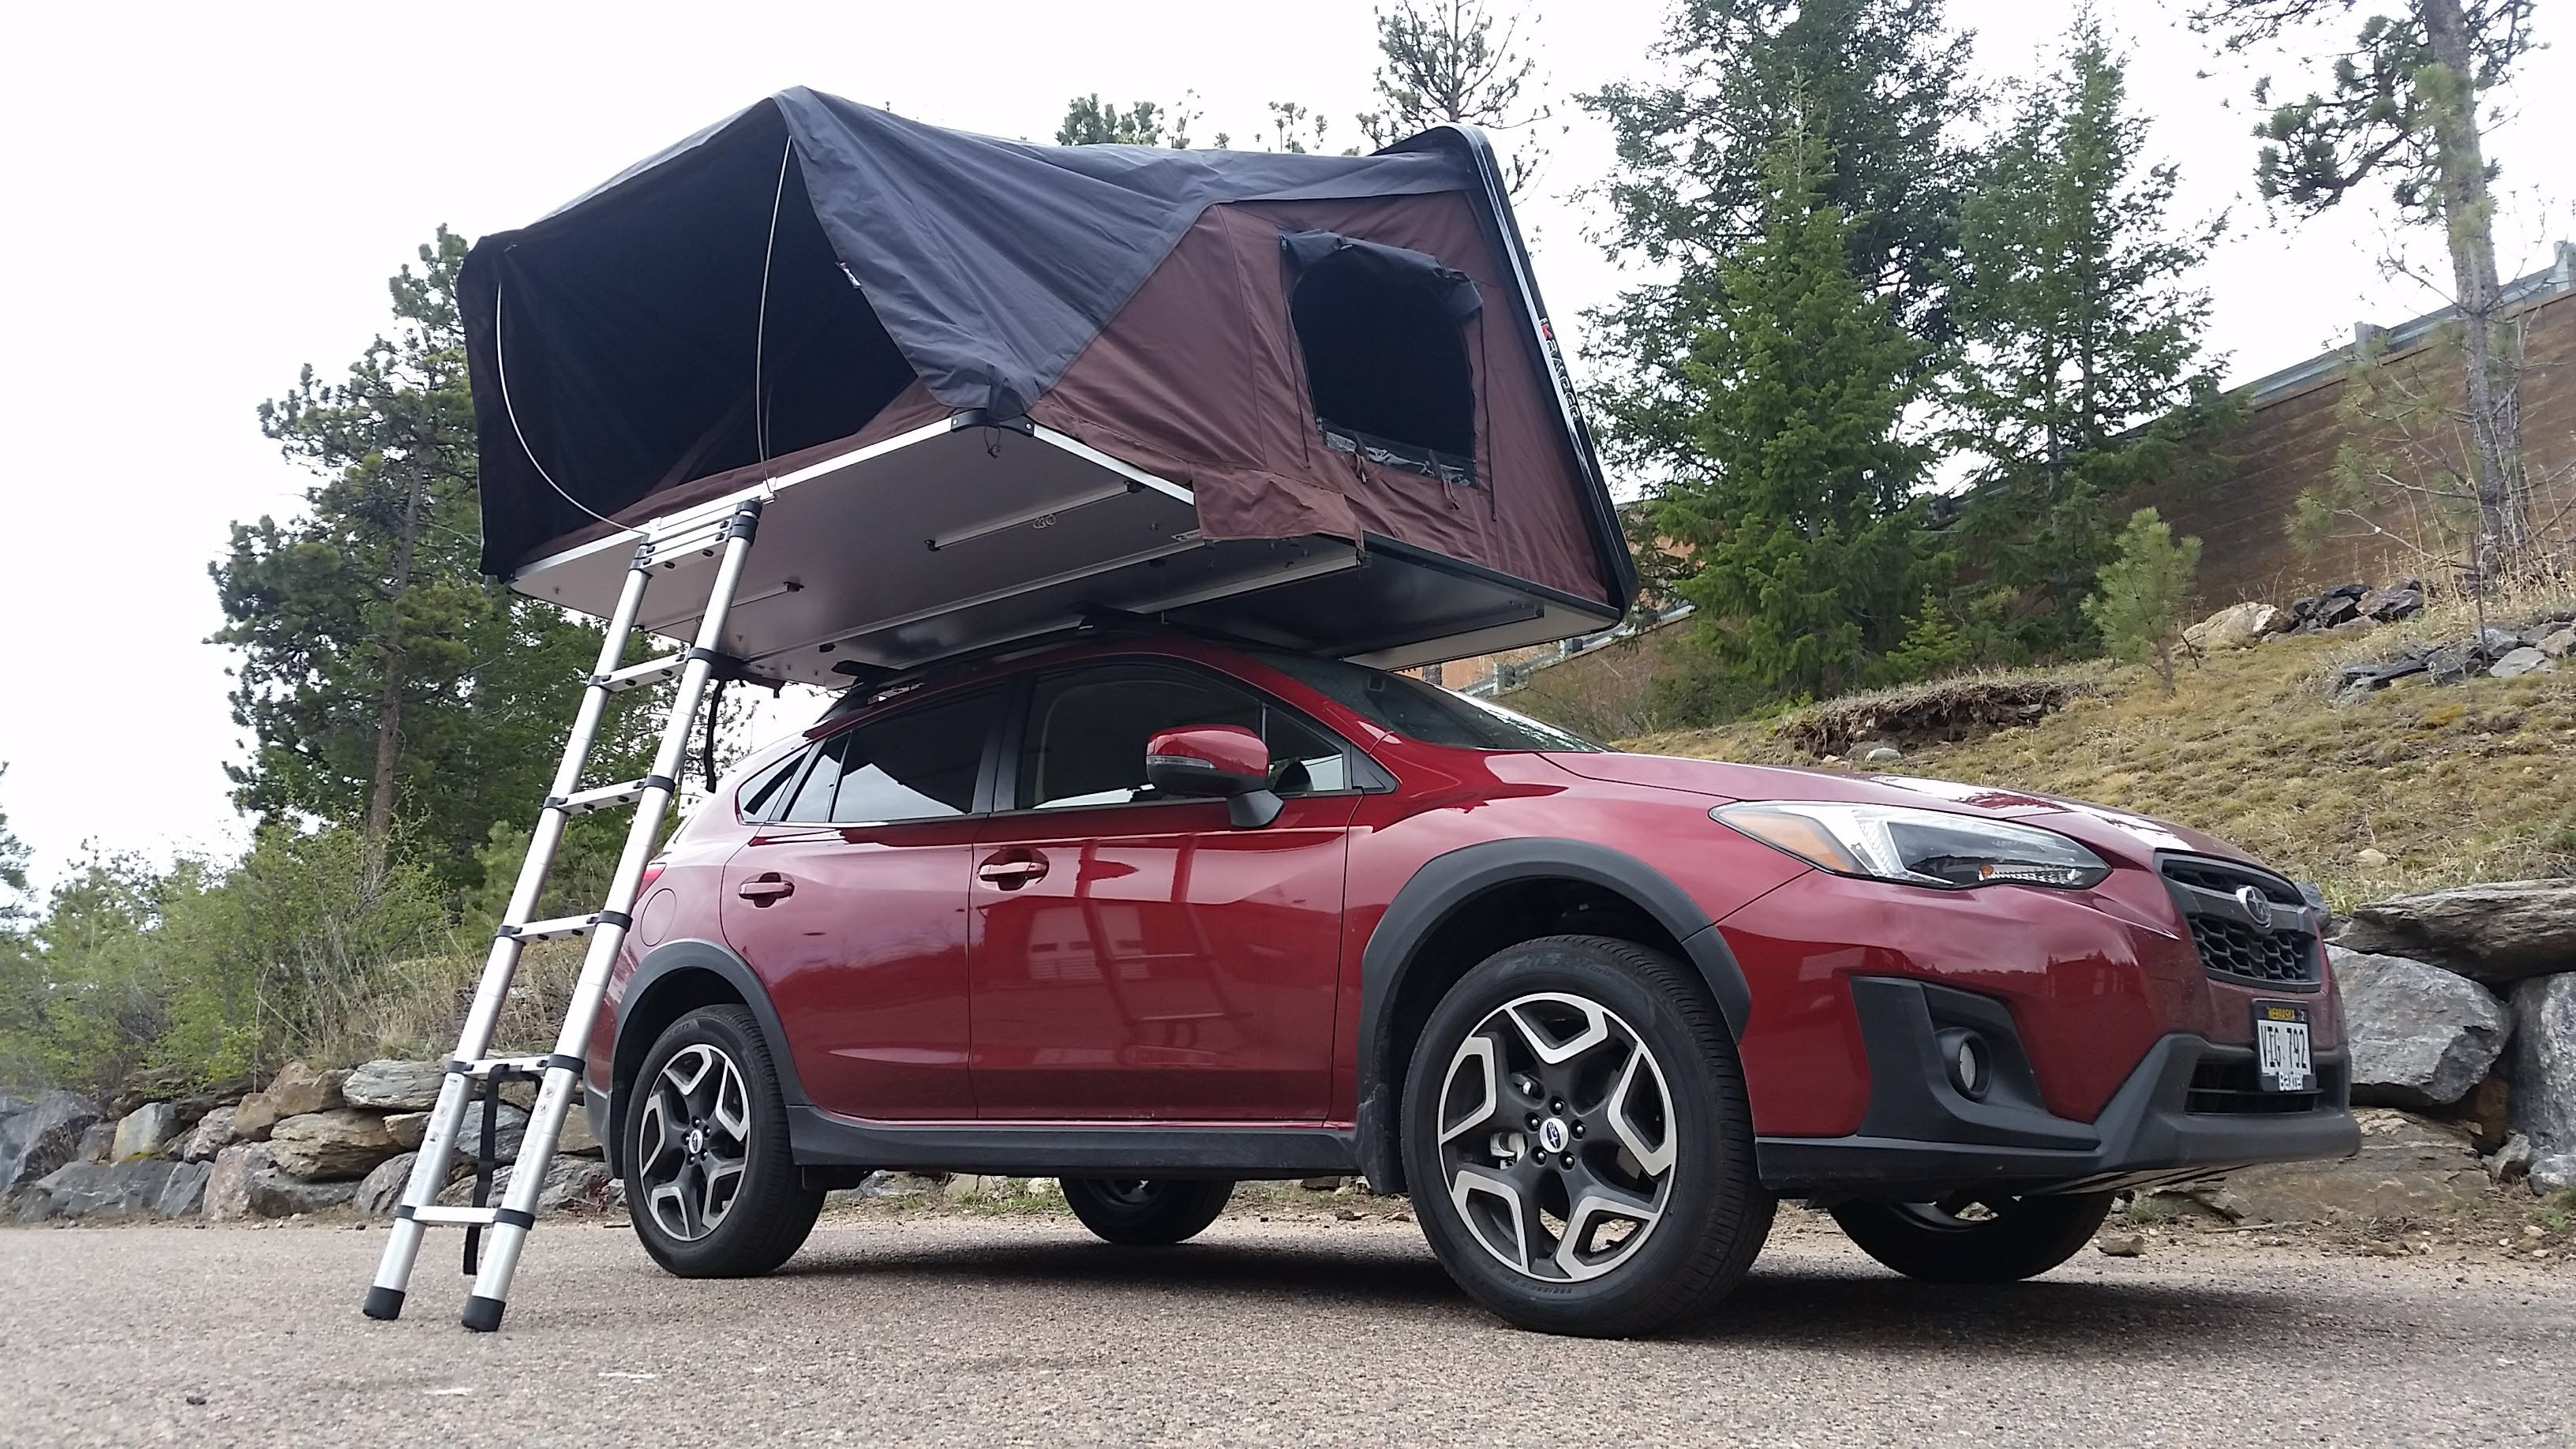 4 Person Hardshell Rooftop Tent On A Subaru Crosstrek Ikamper Skycamp Sets Up In Under 1 Minute And Has King Size Mattress Ready For Your Next Road Trip